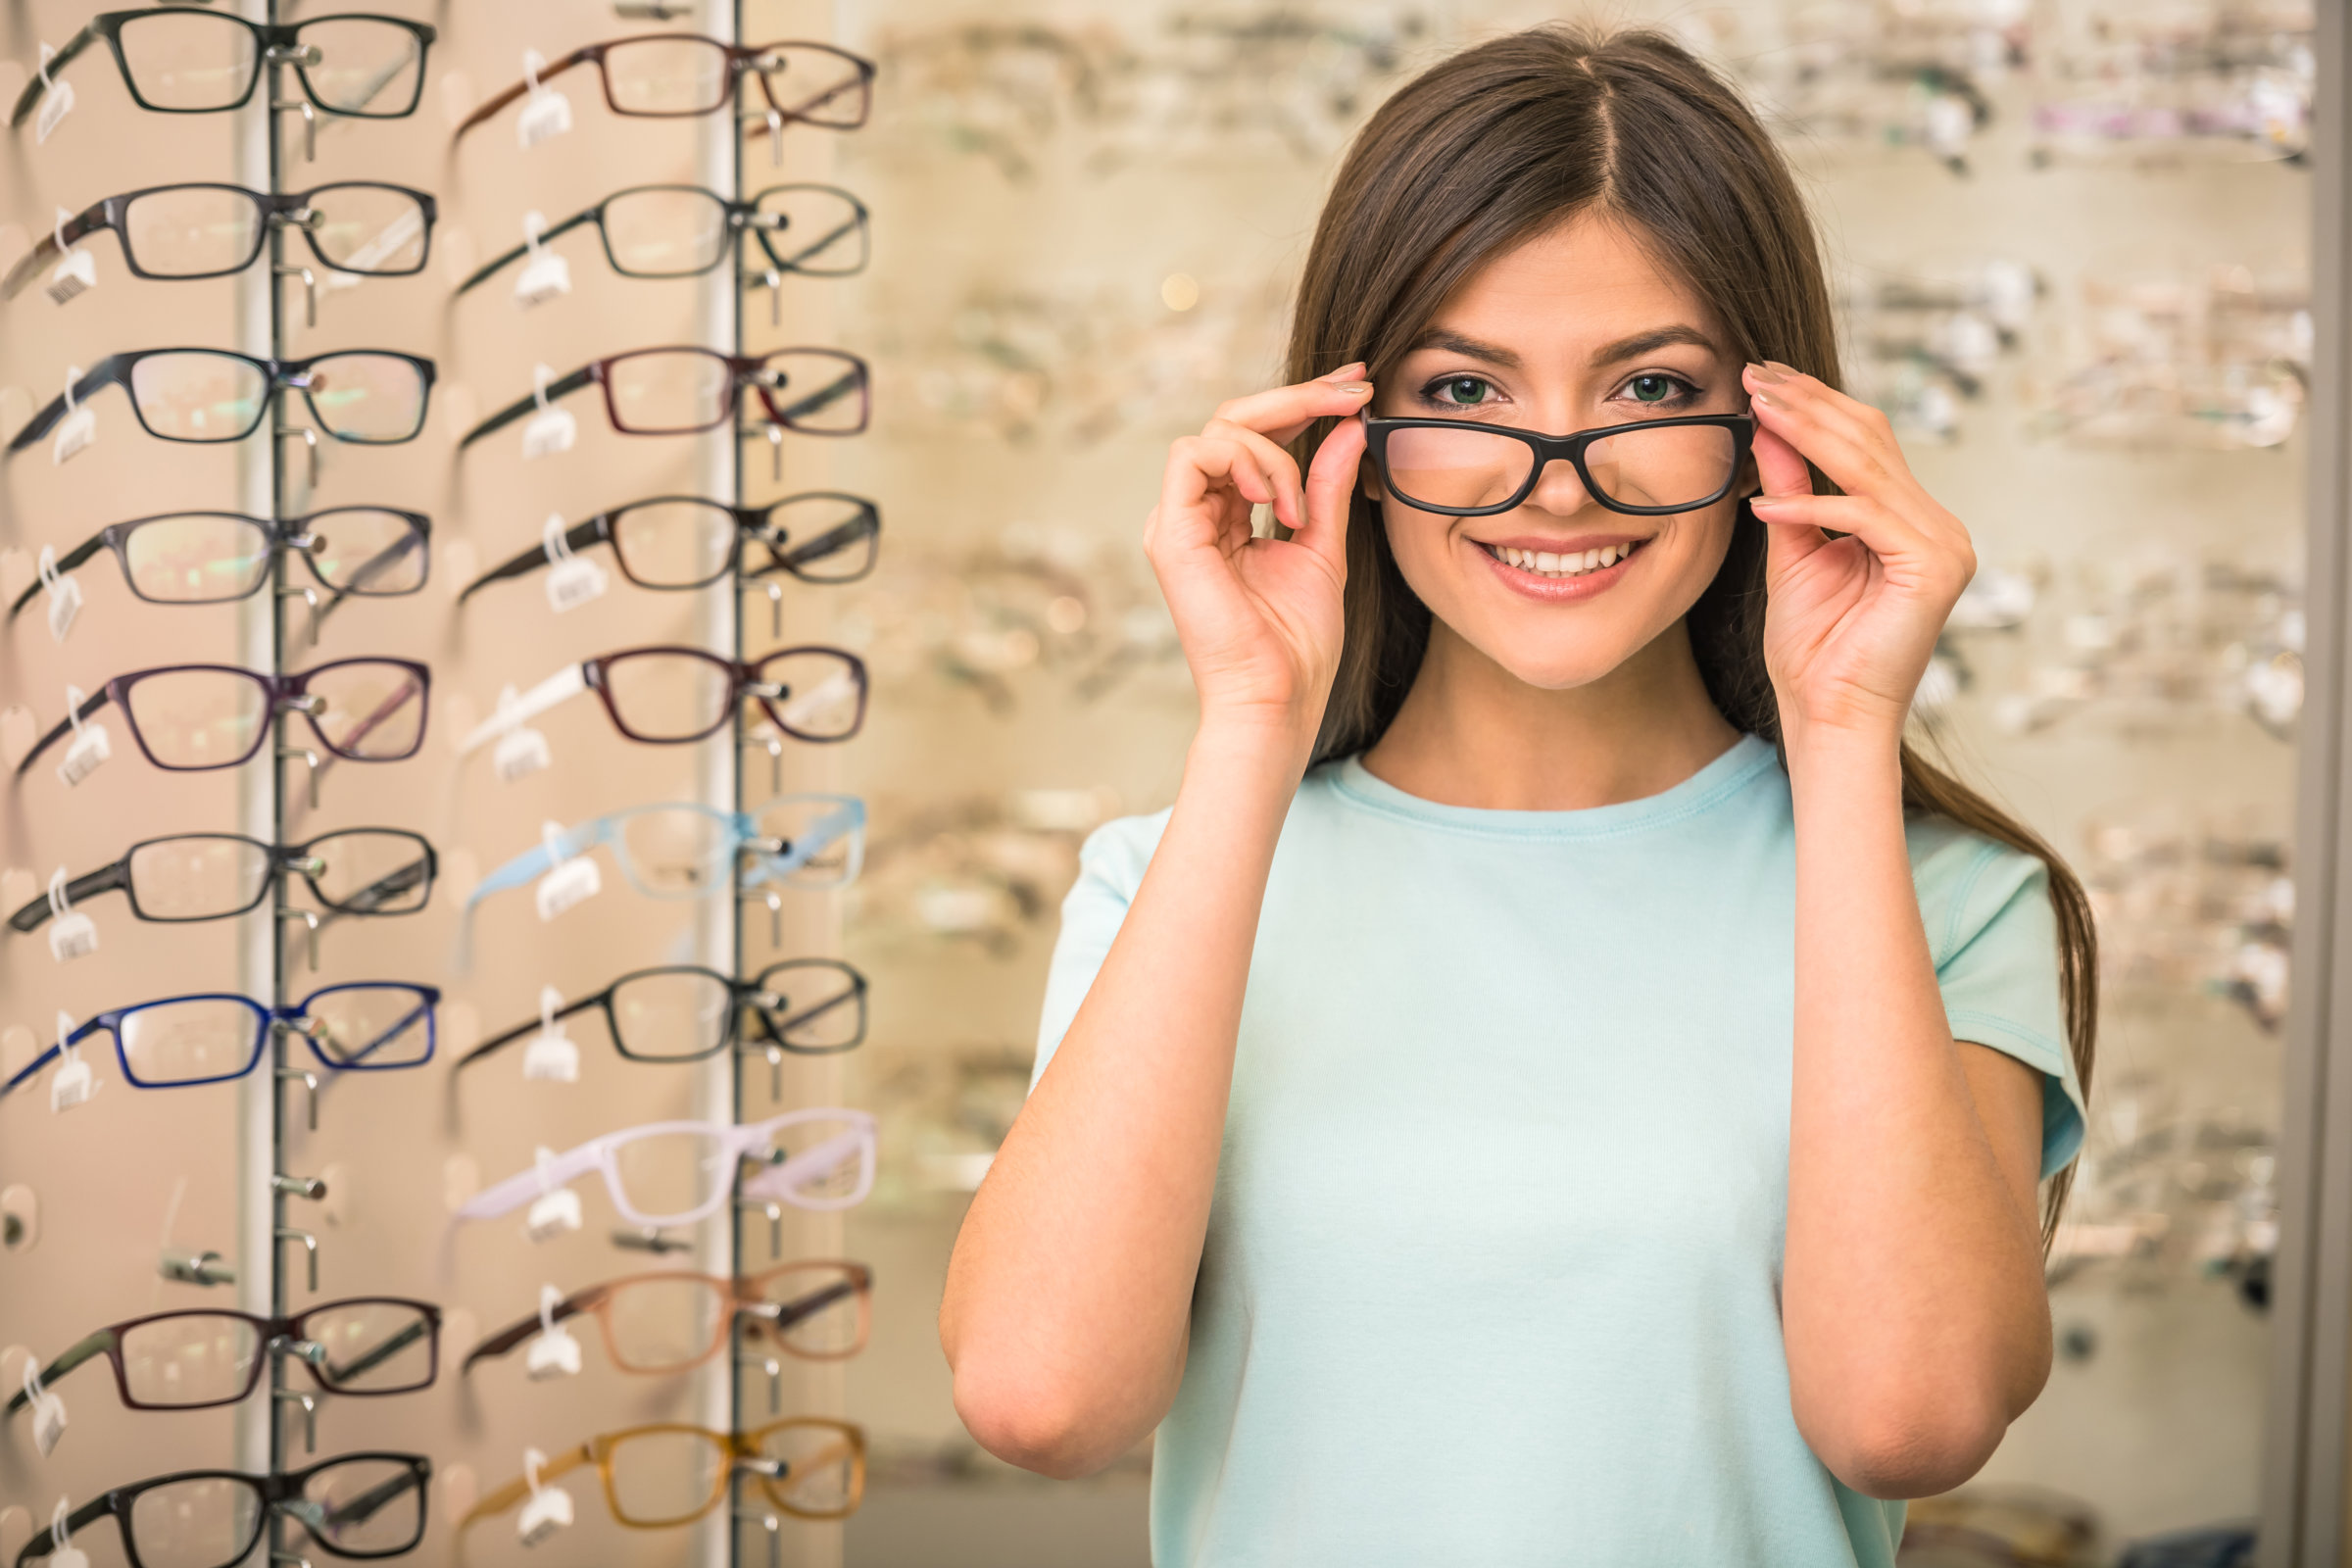 Turlock Family Vision - Eyewear Choices